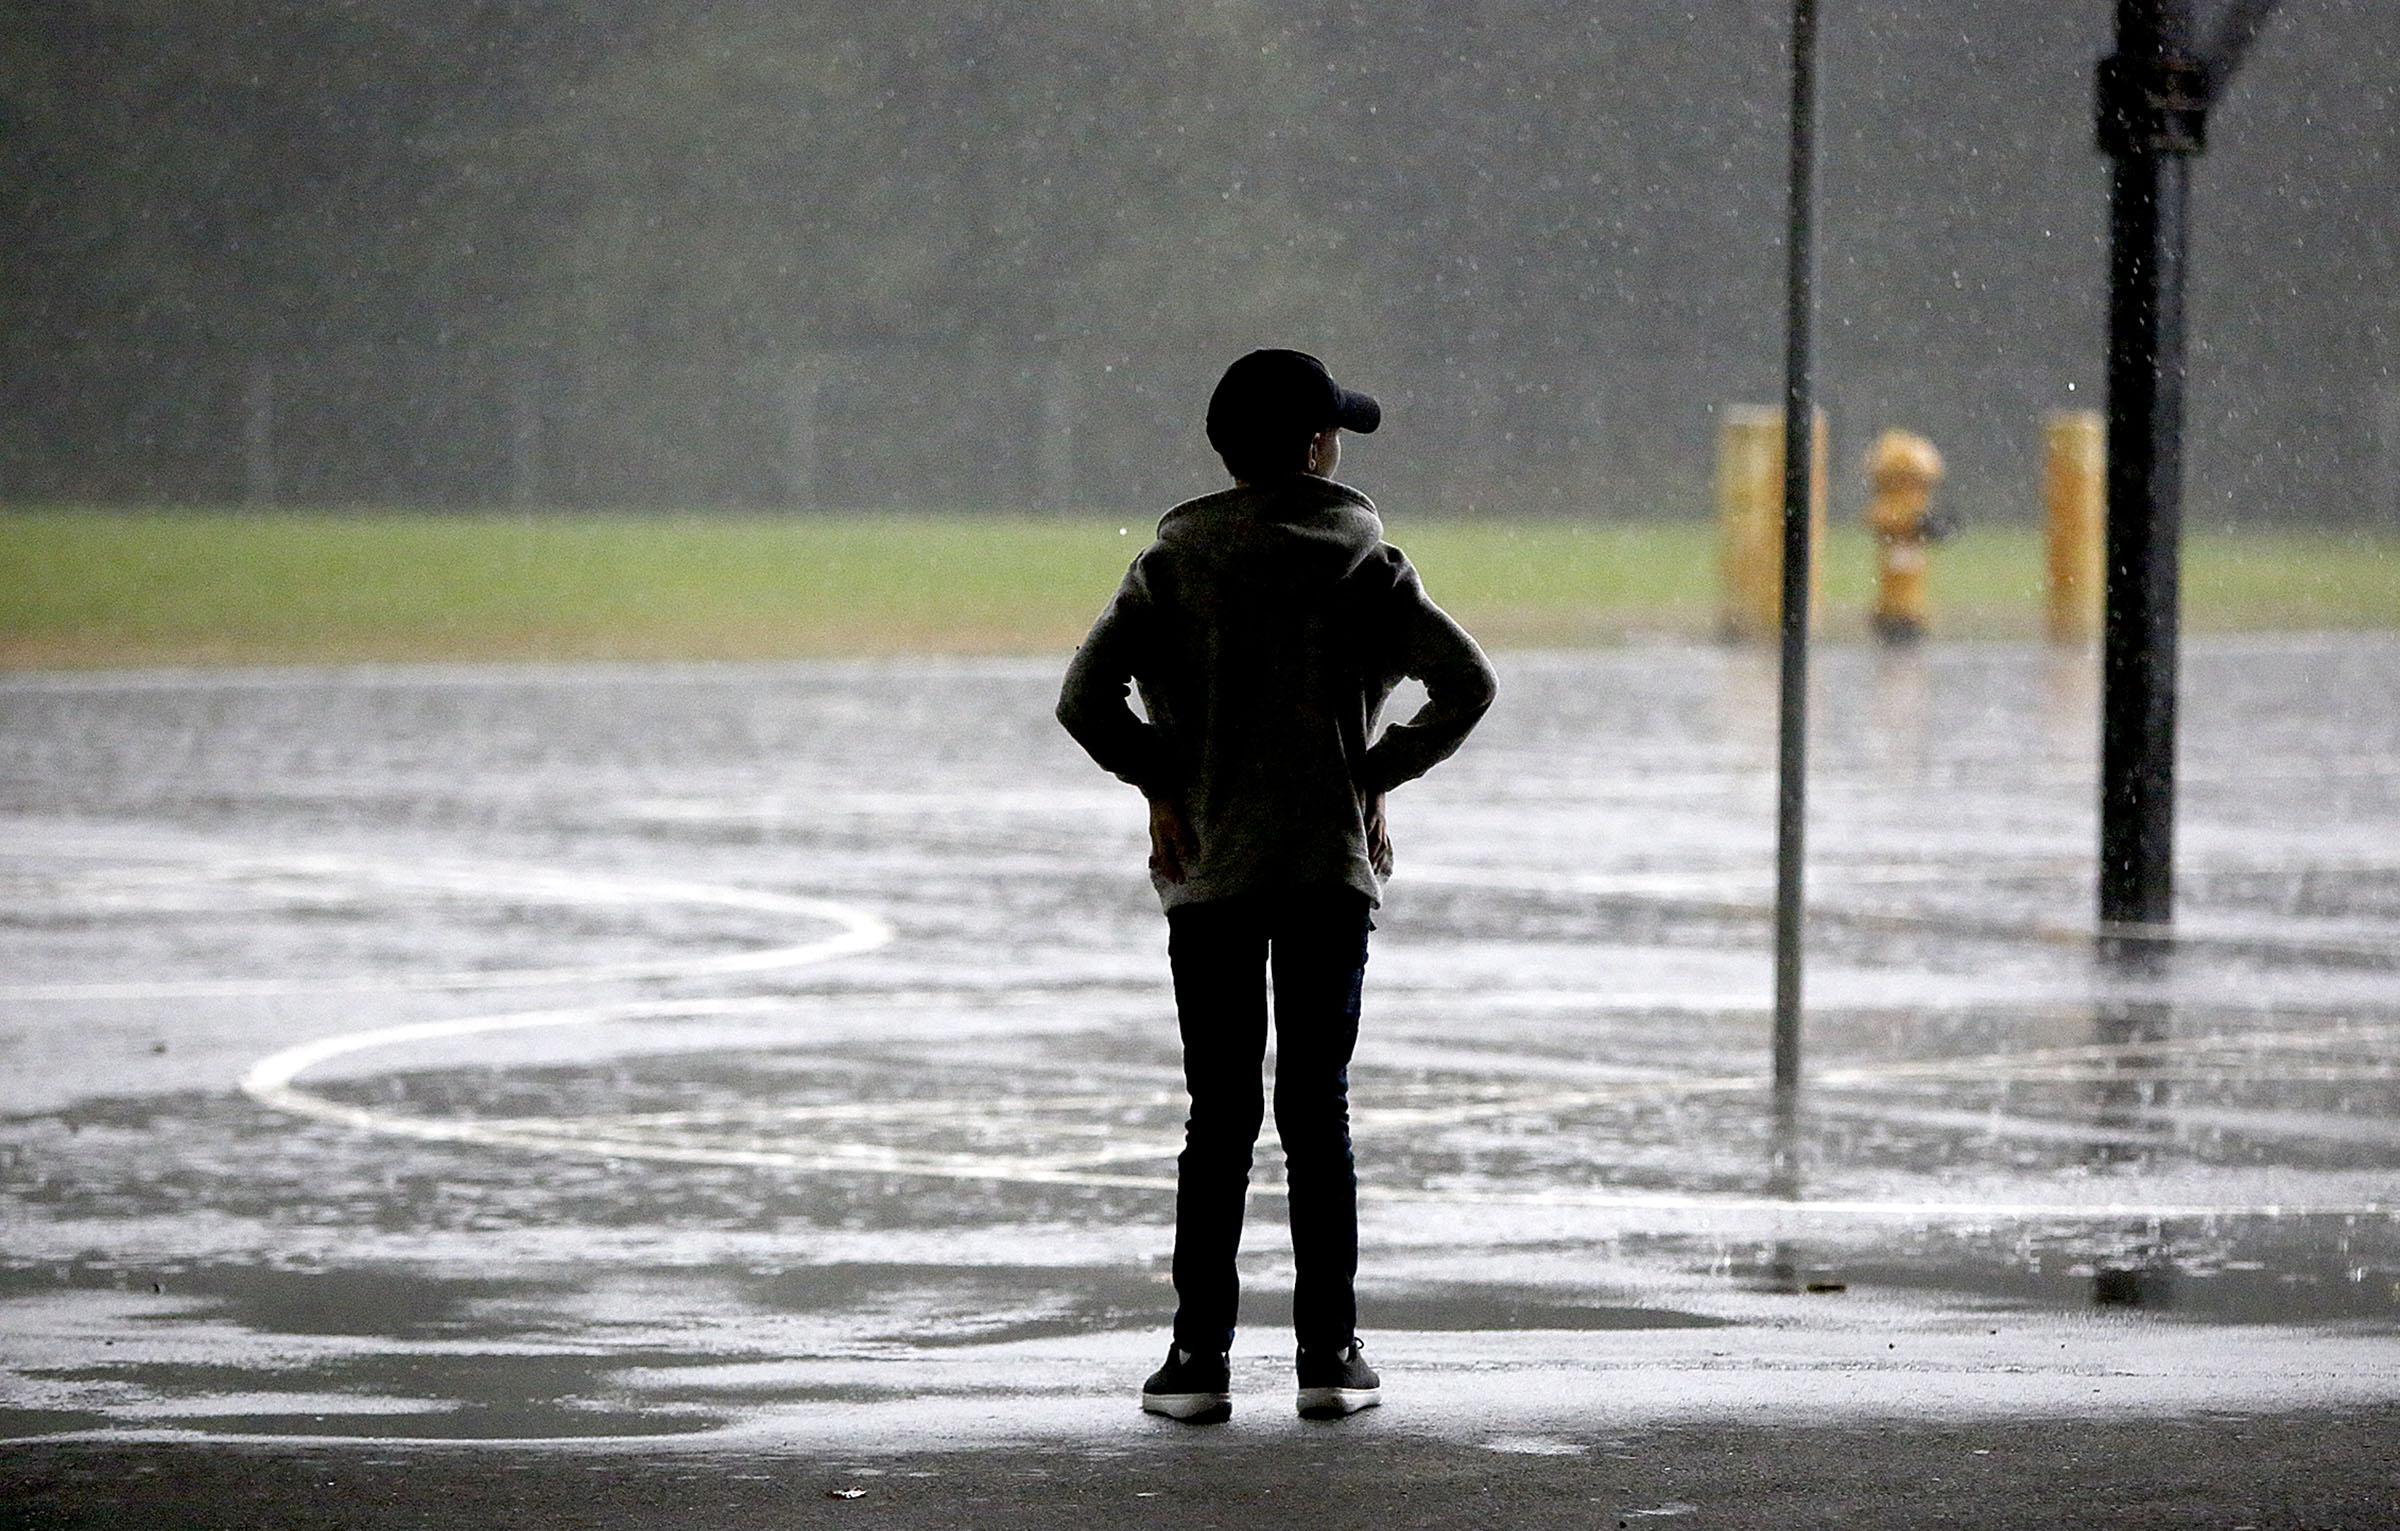 Tom Allen watches a heavy rainfall near his home in Renton, Wash., on Friday, Sept. 14, 2018.